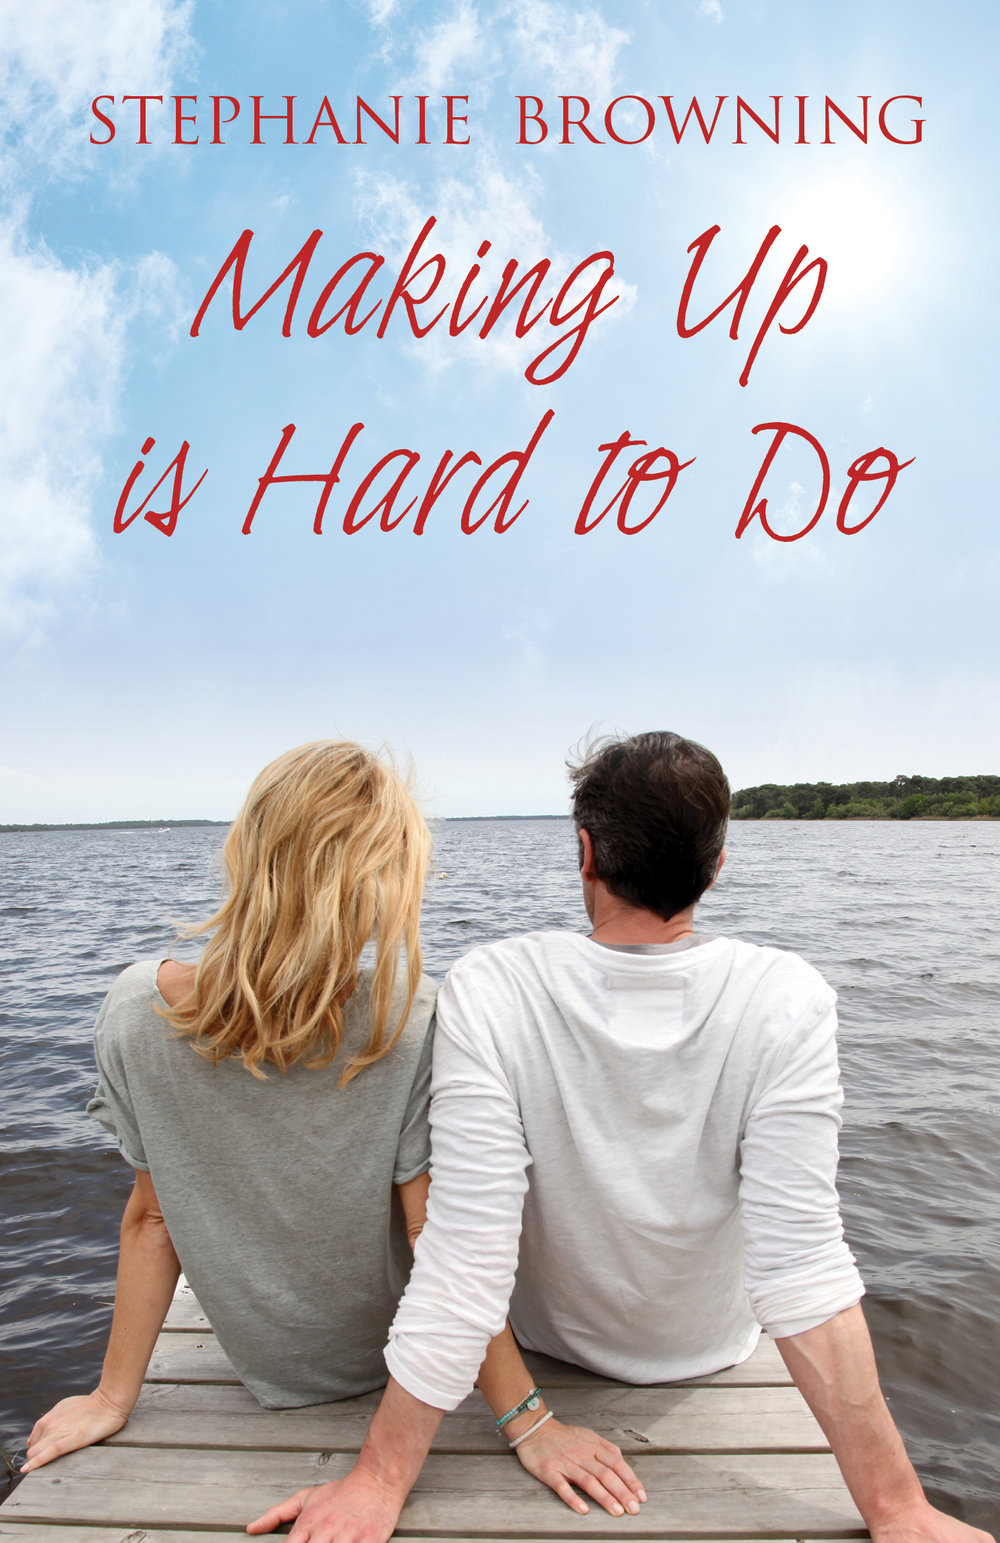 Making Up is Hard to Do by Stephanie Browning